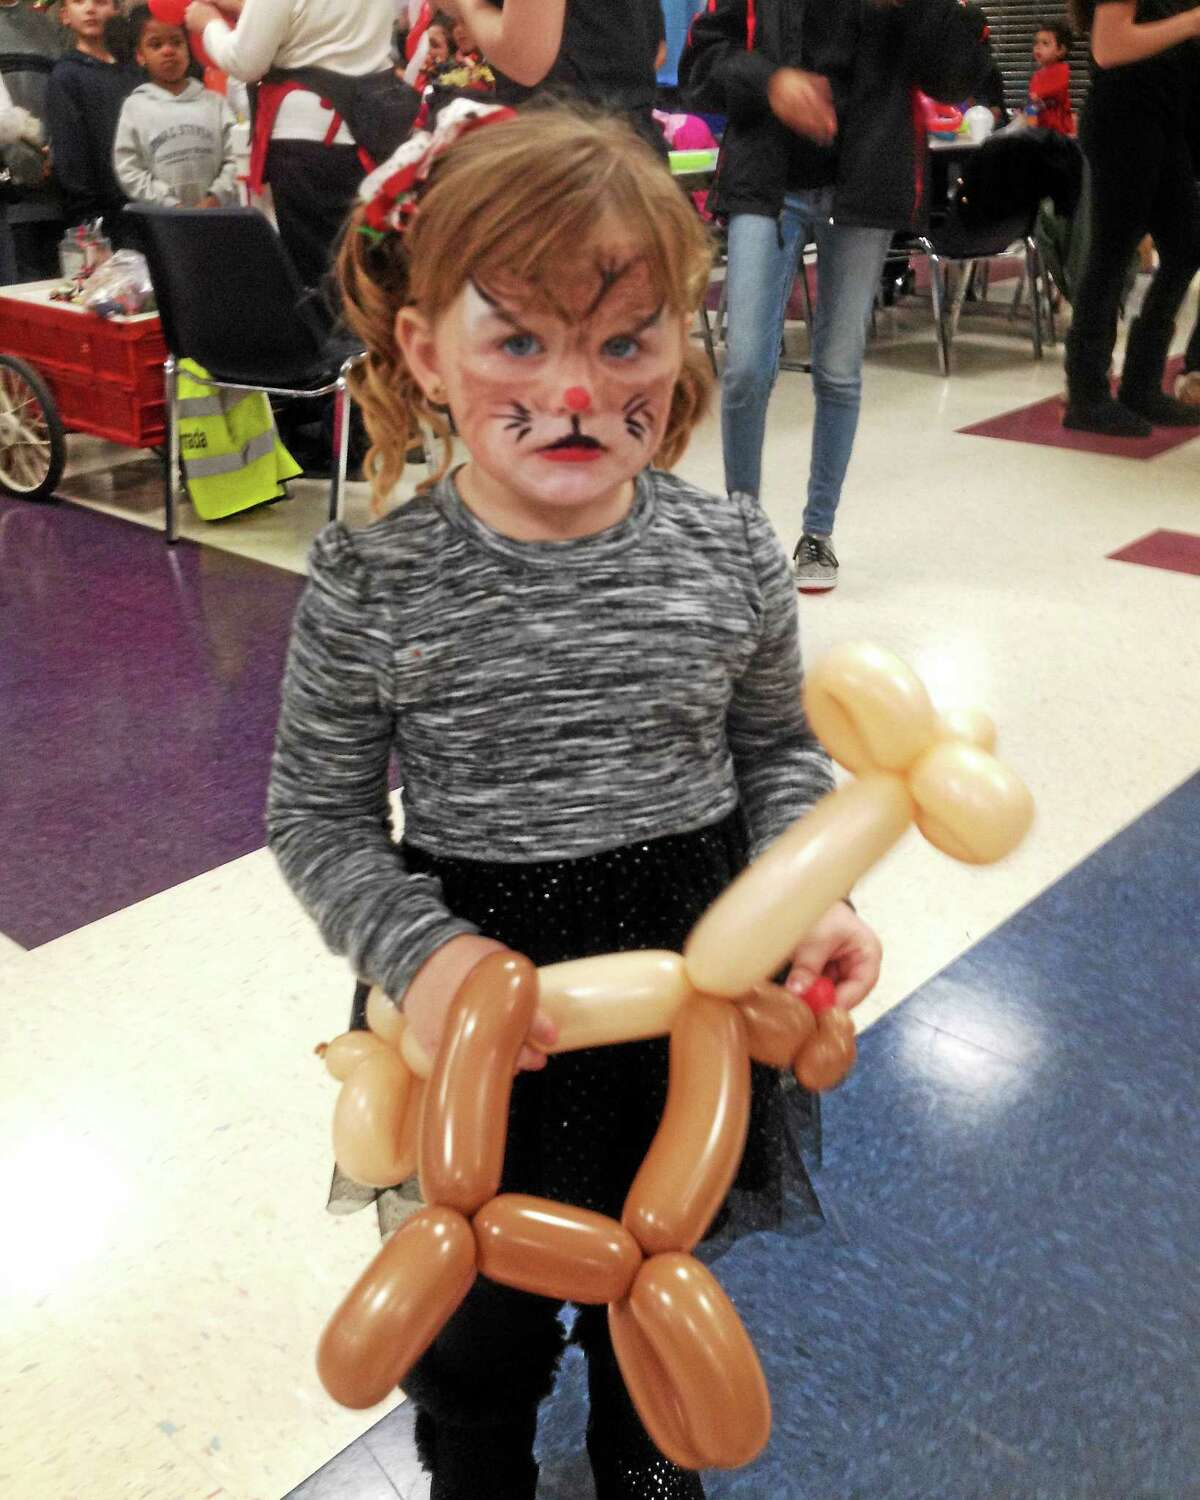 Children of all ages enjoyed watching — and receiving — their very own balloon creations courtesy of Noodles at the holiday party organized by Cromwell Youth Services staff and Cromwell High School Student Council members.